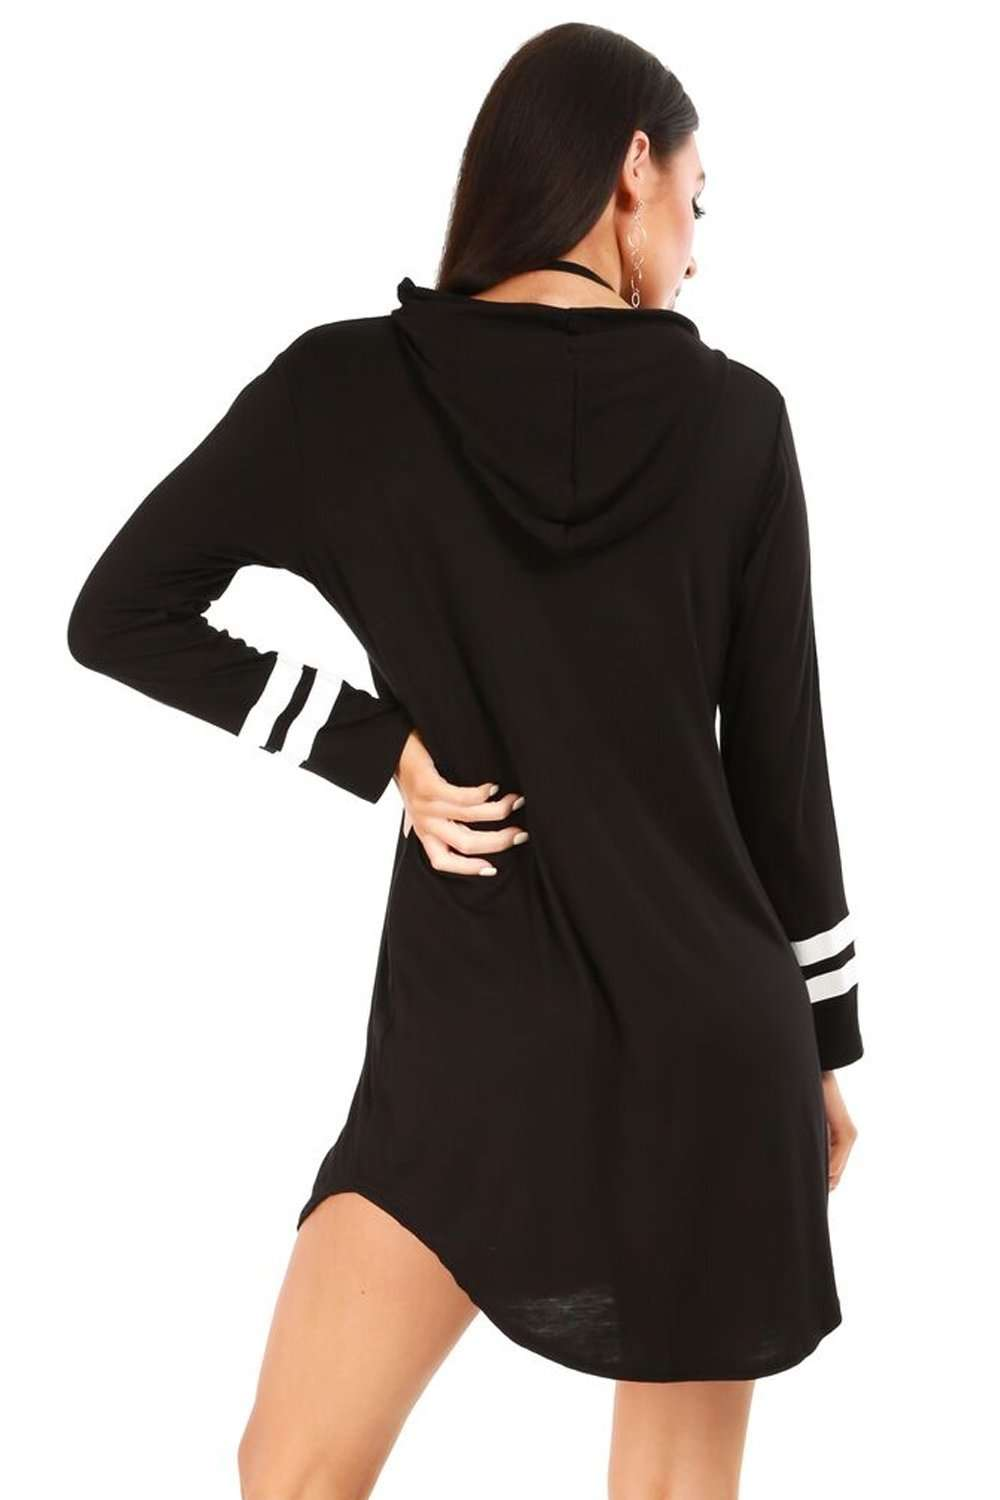 Alaskia Striped Sleeve Oversized Hooded Tshirt Dress - bejealous-com